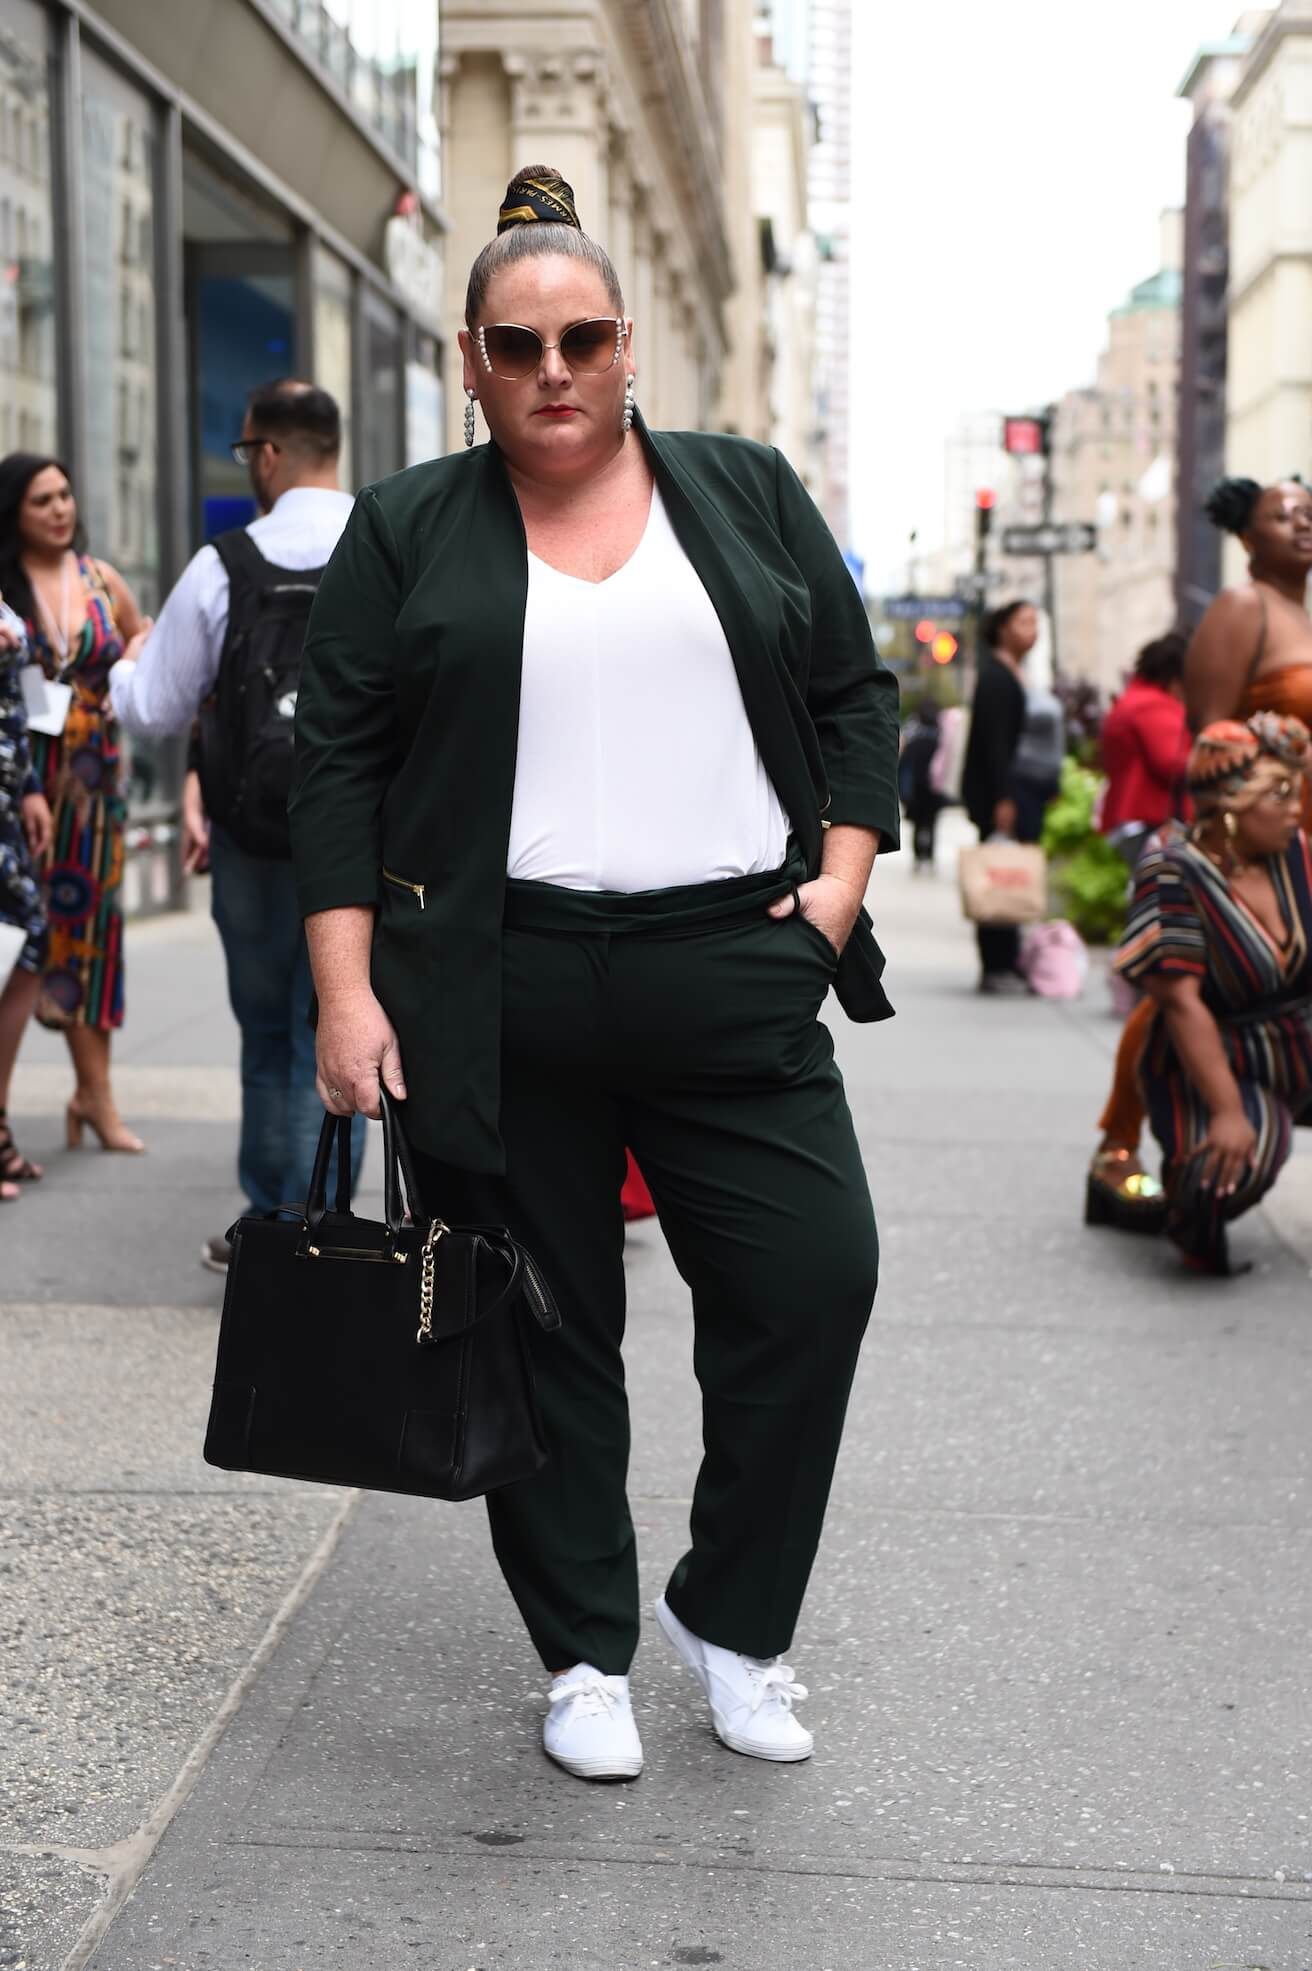 104d86f8d42 plus size street style outfit featuring a trendy black suit and white top